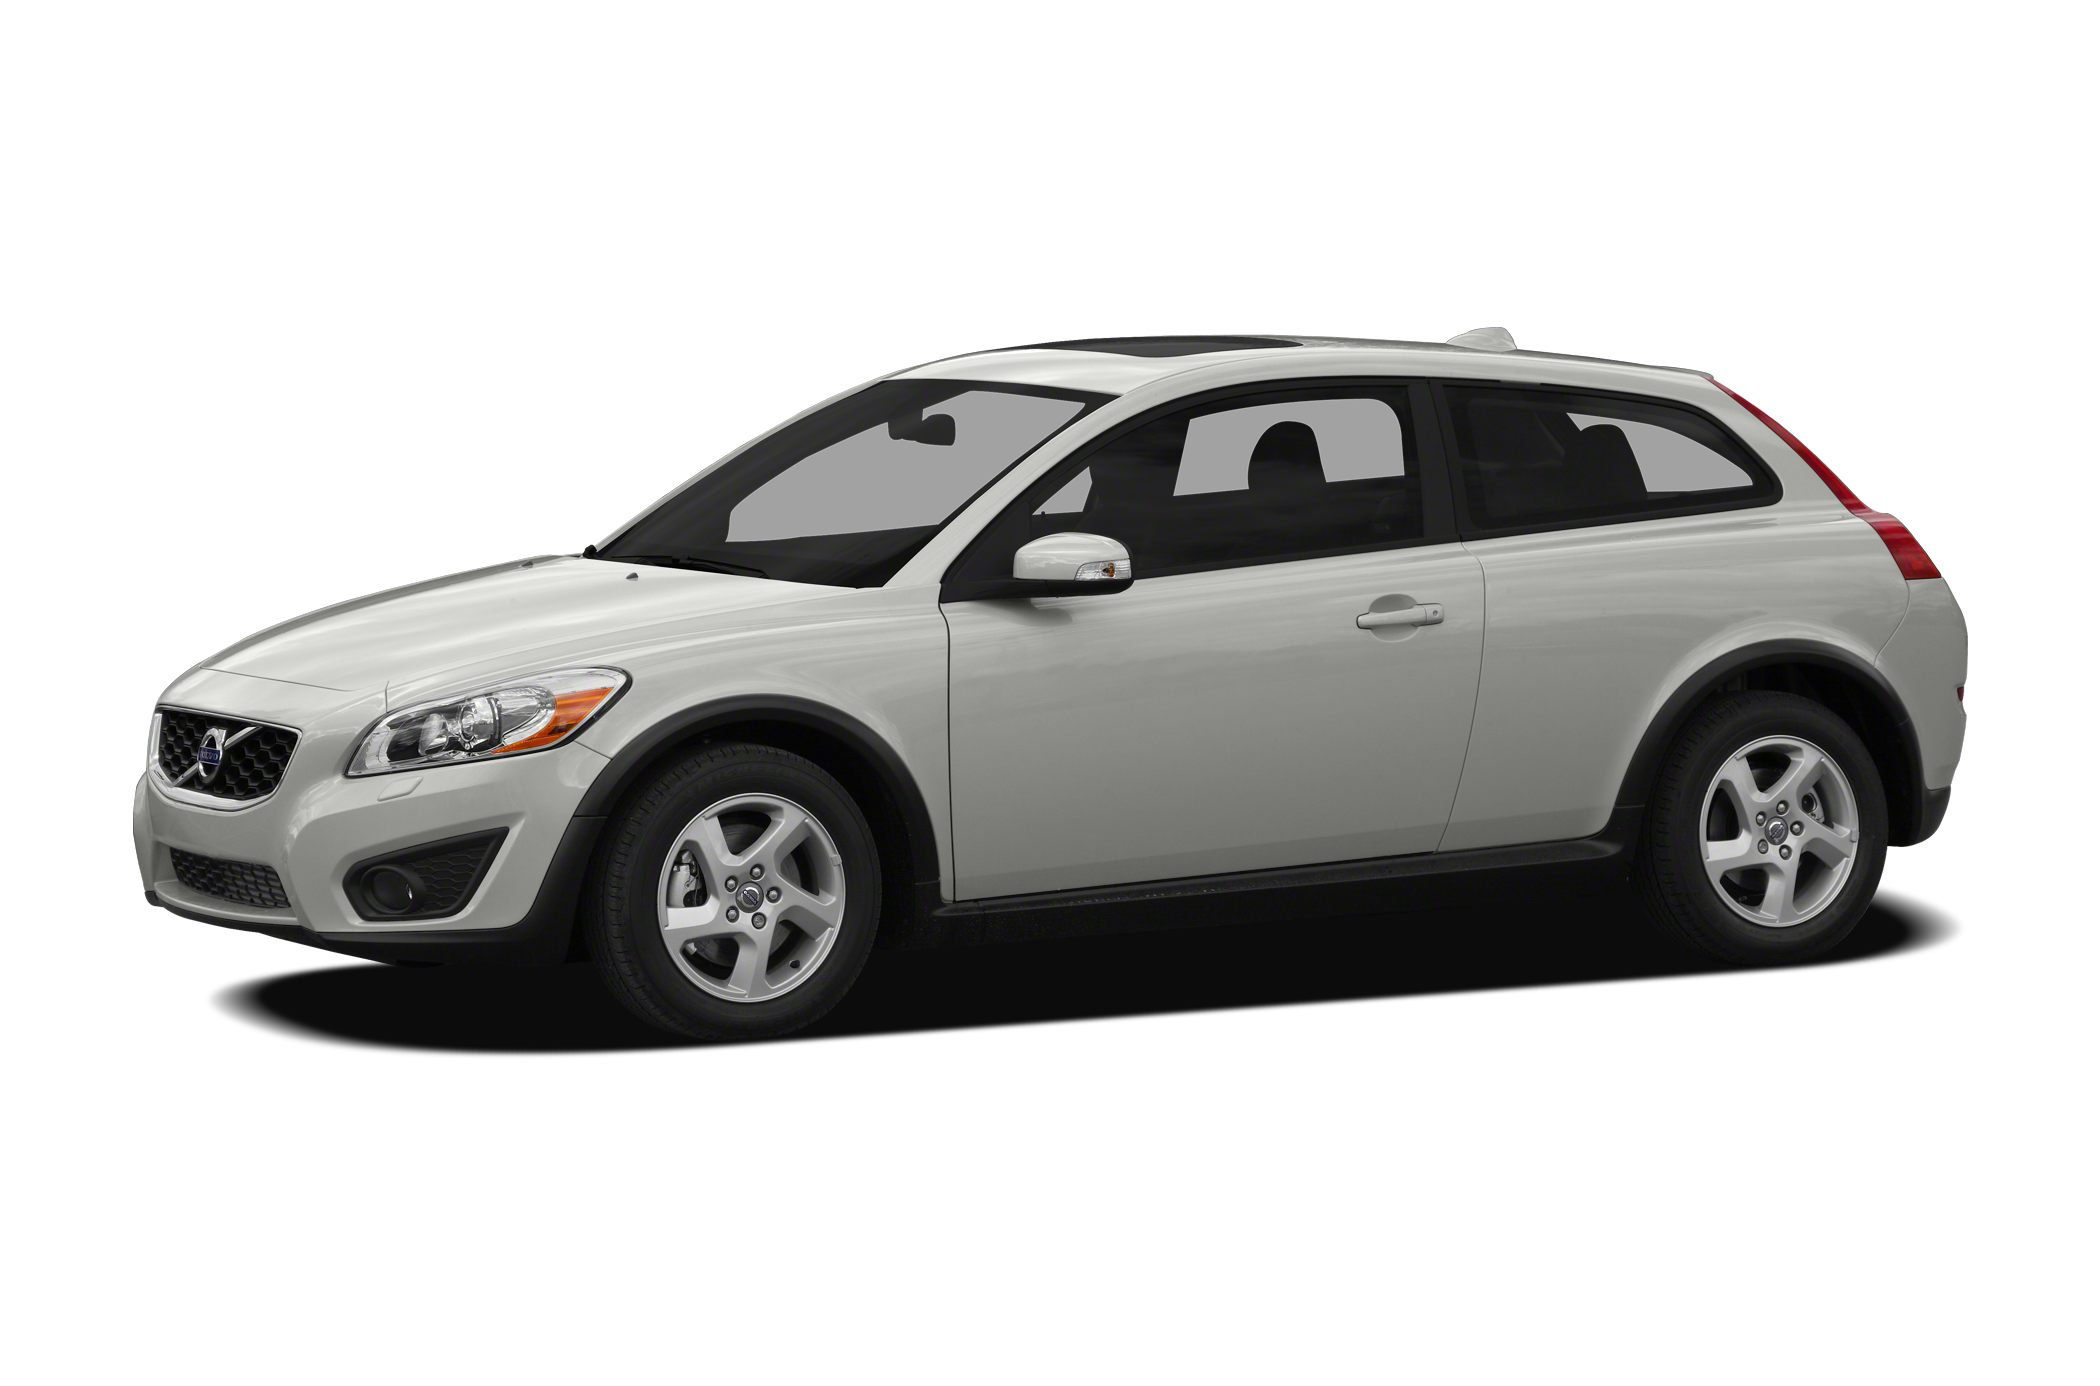 2012 Volvo C30 T5 Hatchback for sale in Plant City for $19,827 with 30,053 miles.